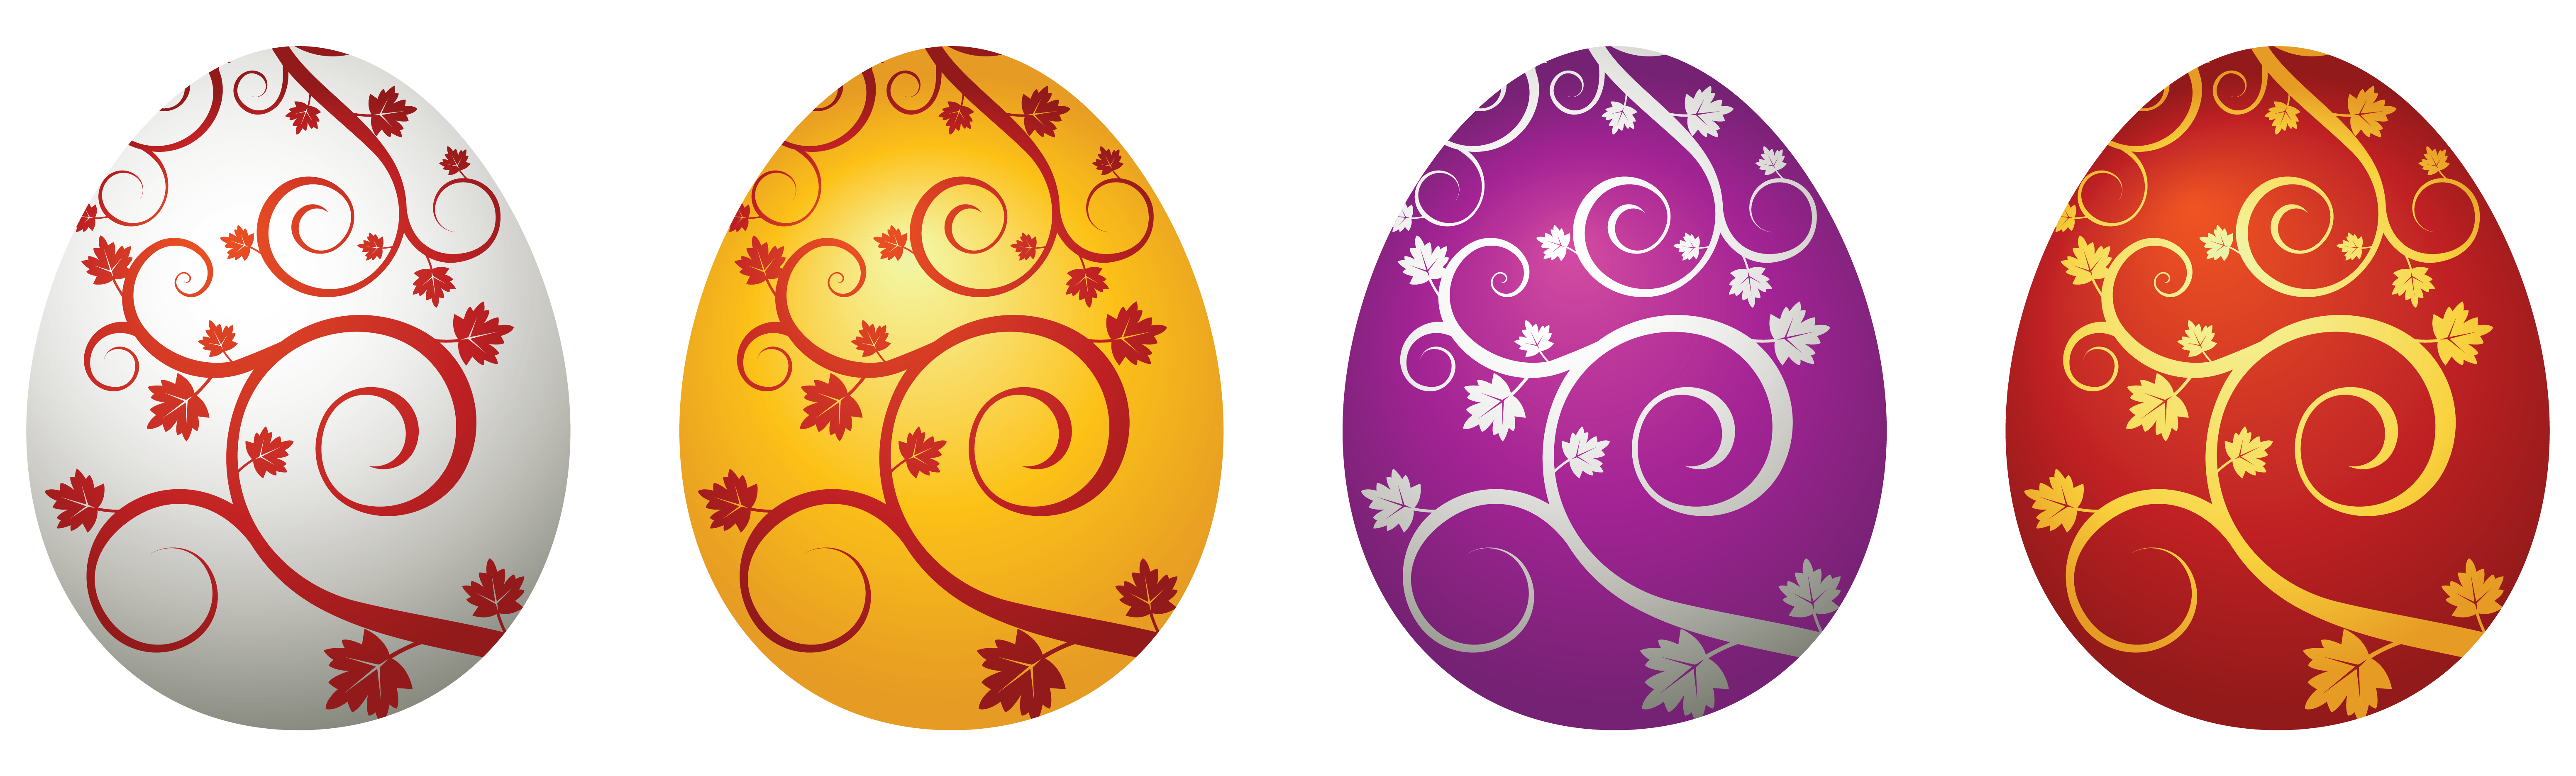 Easter egg designs png. Eggs decorative clipart picture